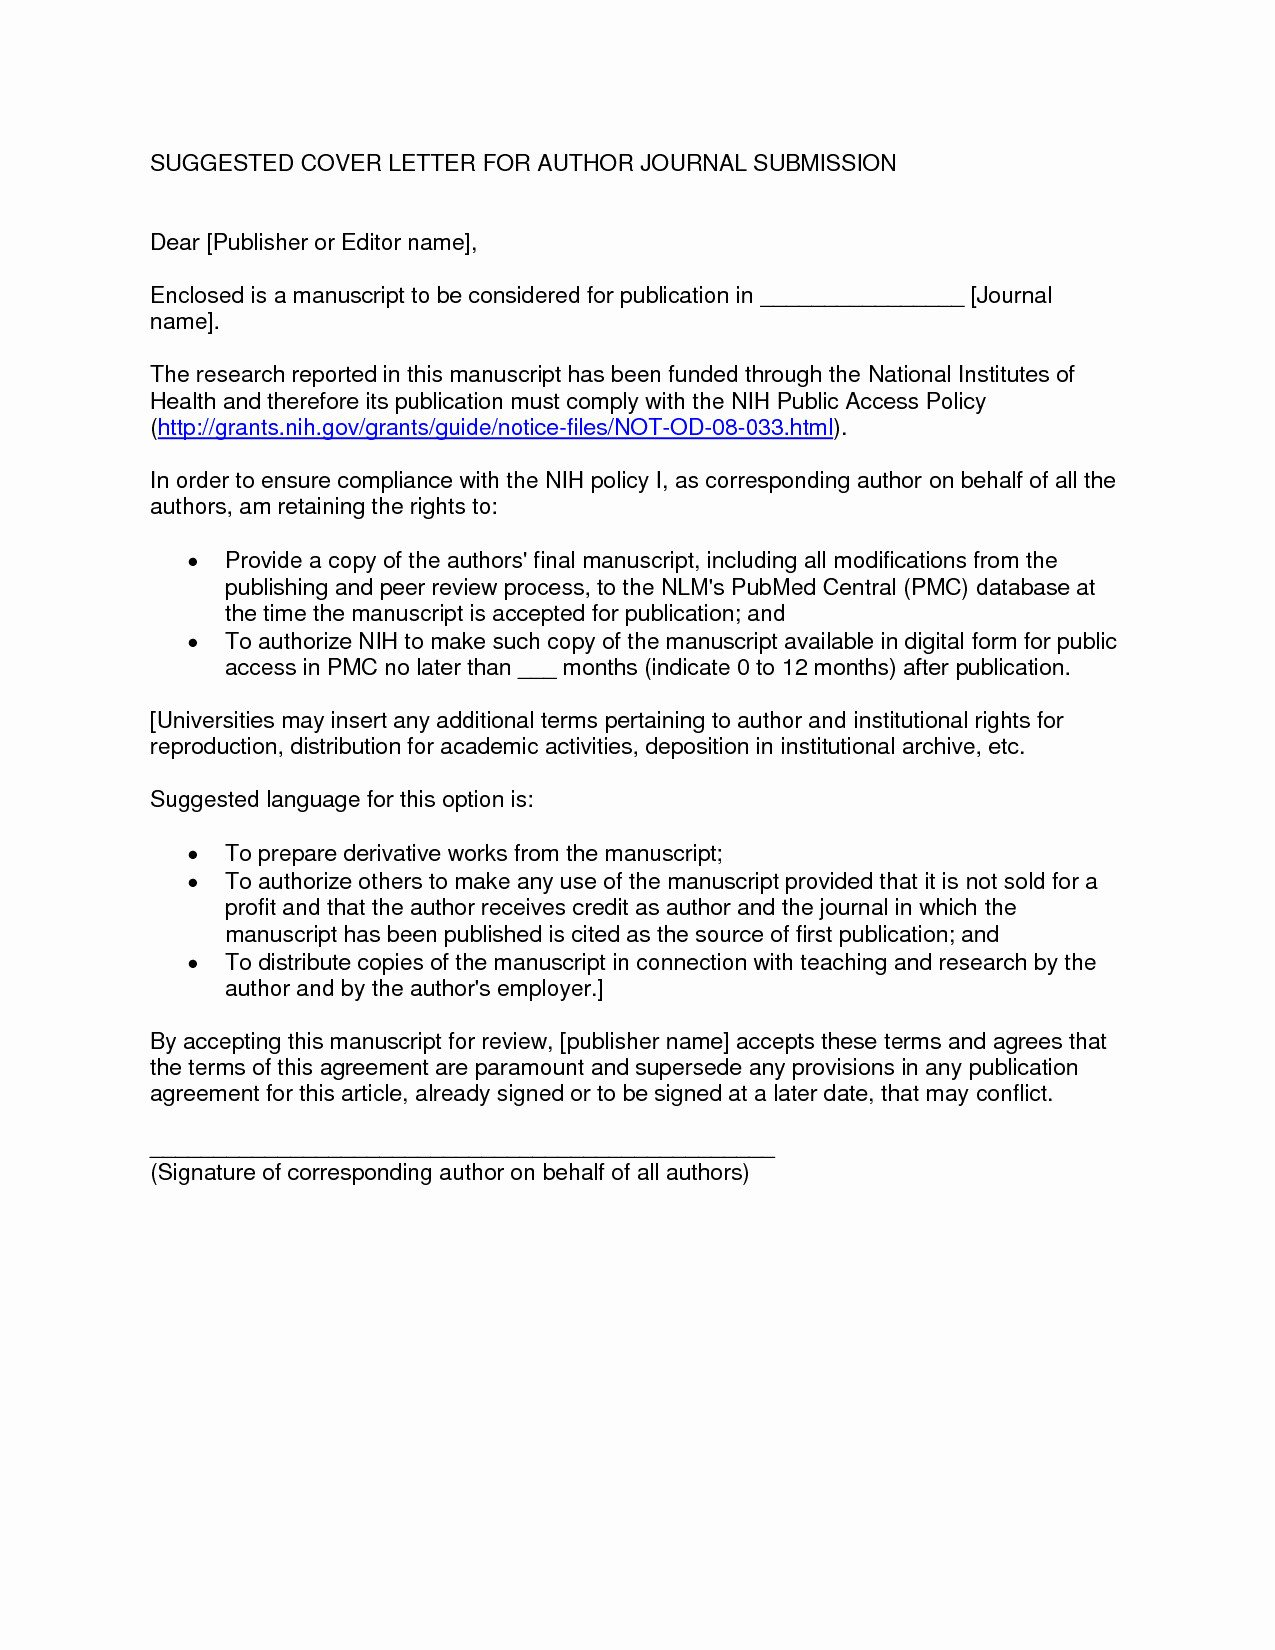 California Apostille Cover Letter Sample 12 13 Sample Cover Letter for Apostille Request